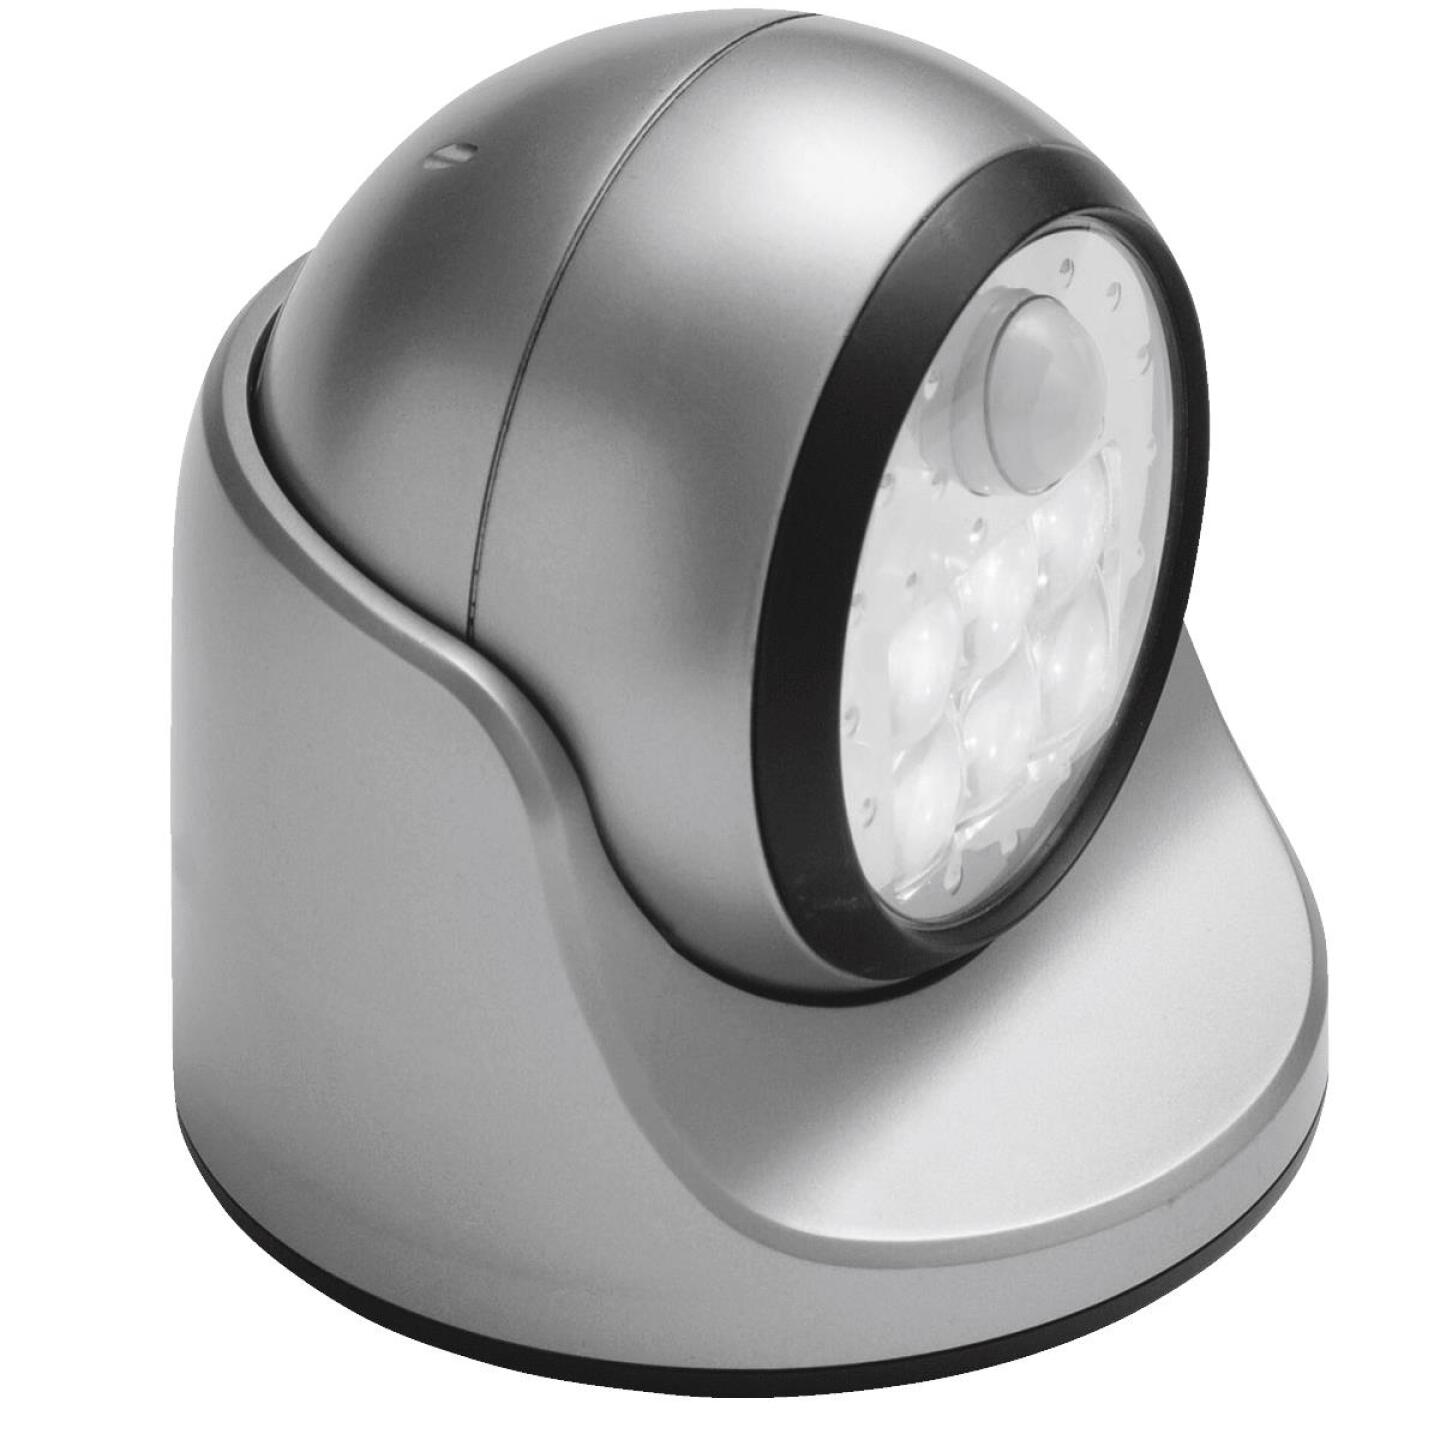 Light It Silver 100 Lm. LED Battery Operated Security Light Fixture Image 1